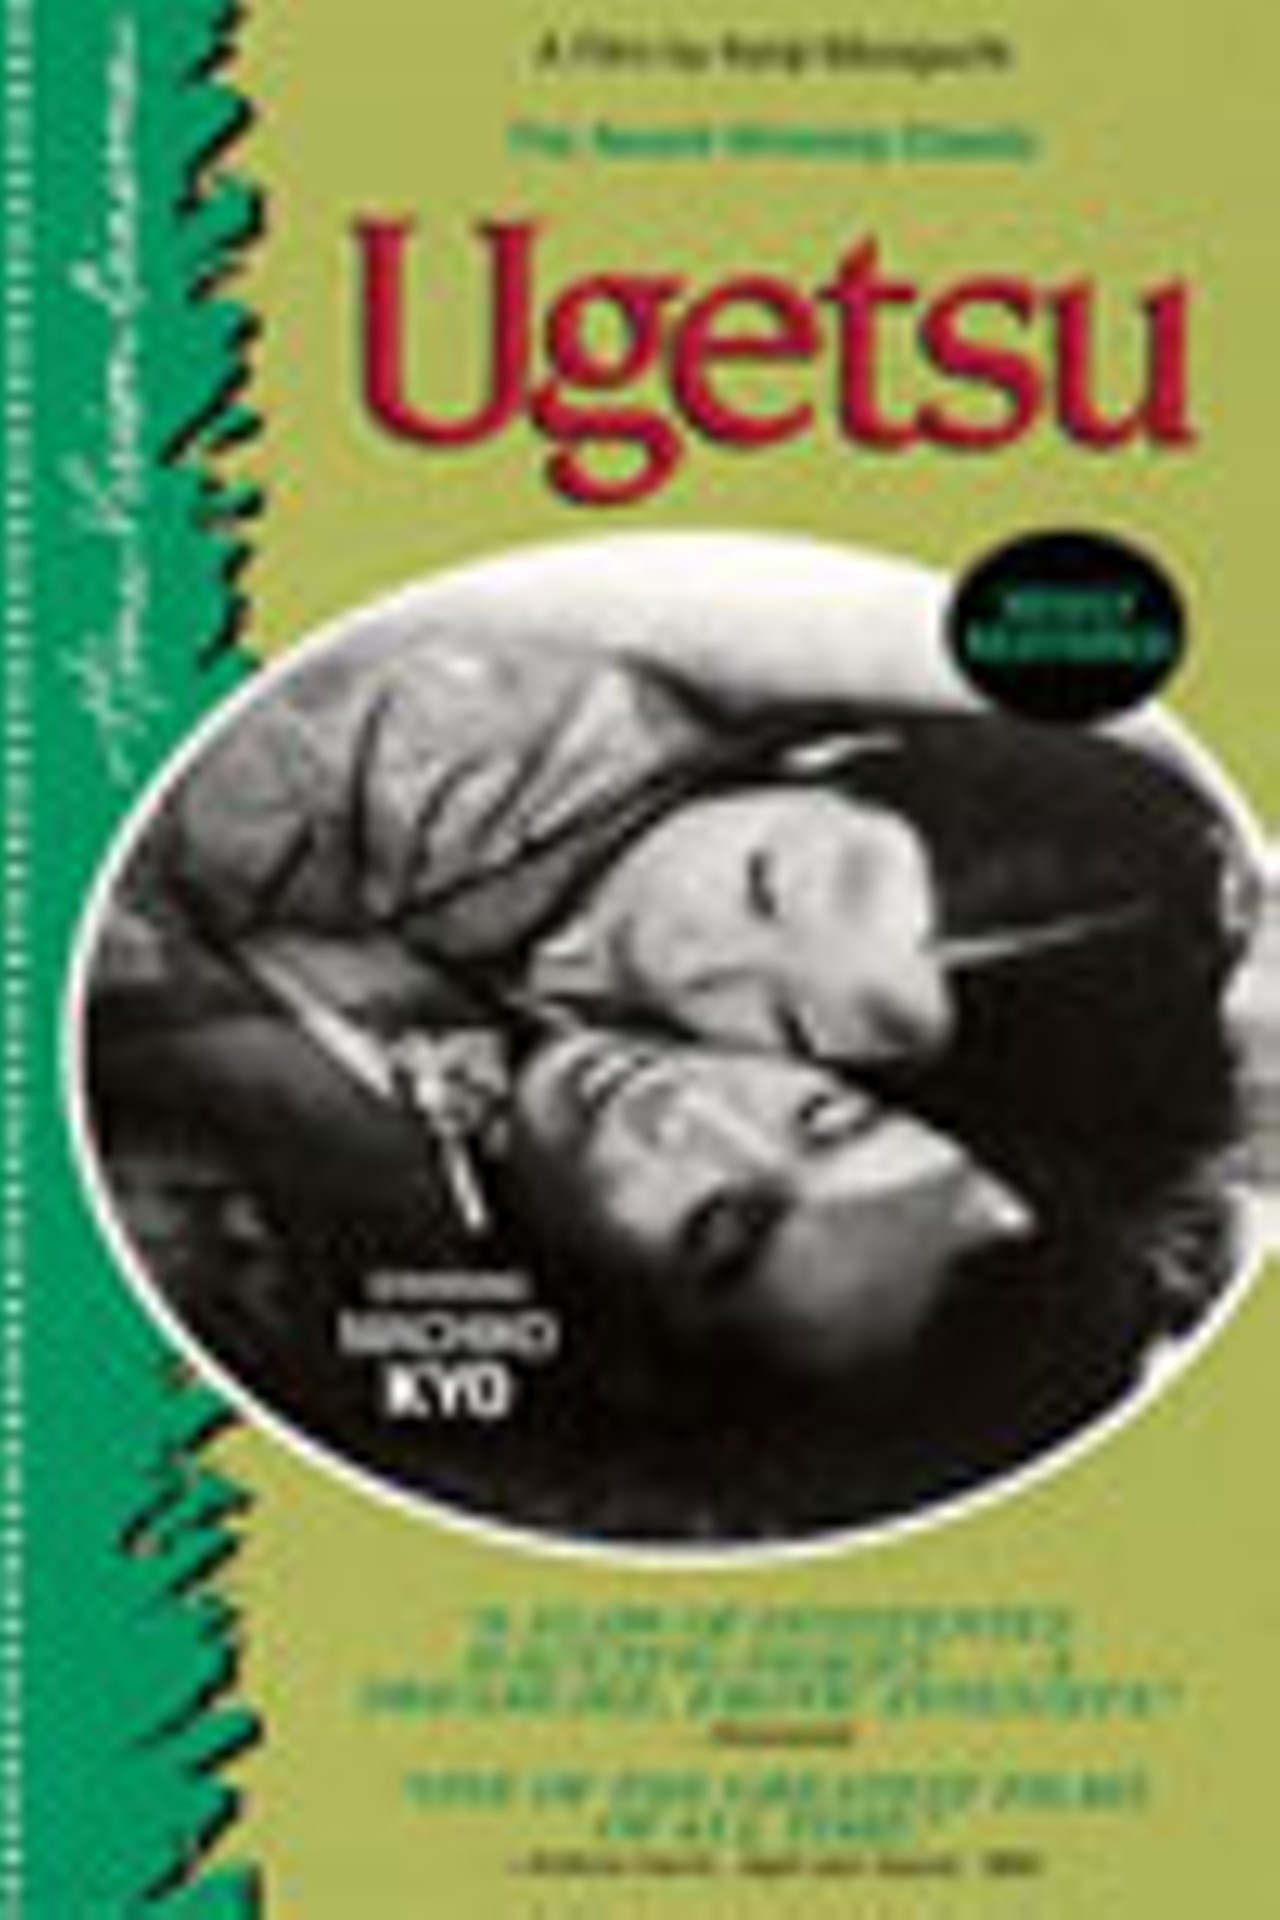 Ugetsu Monogatari 1953 East Bay Express